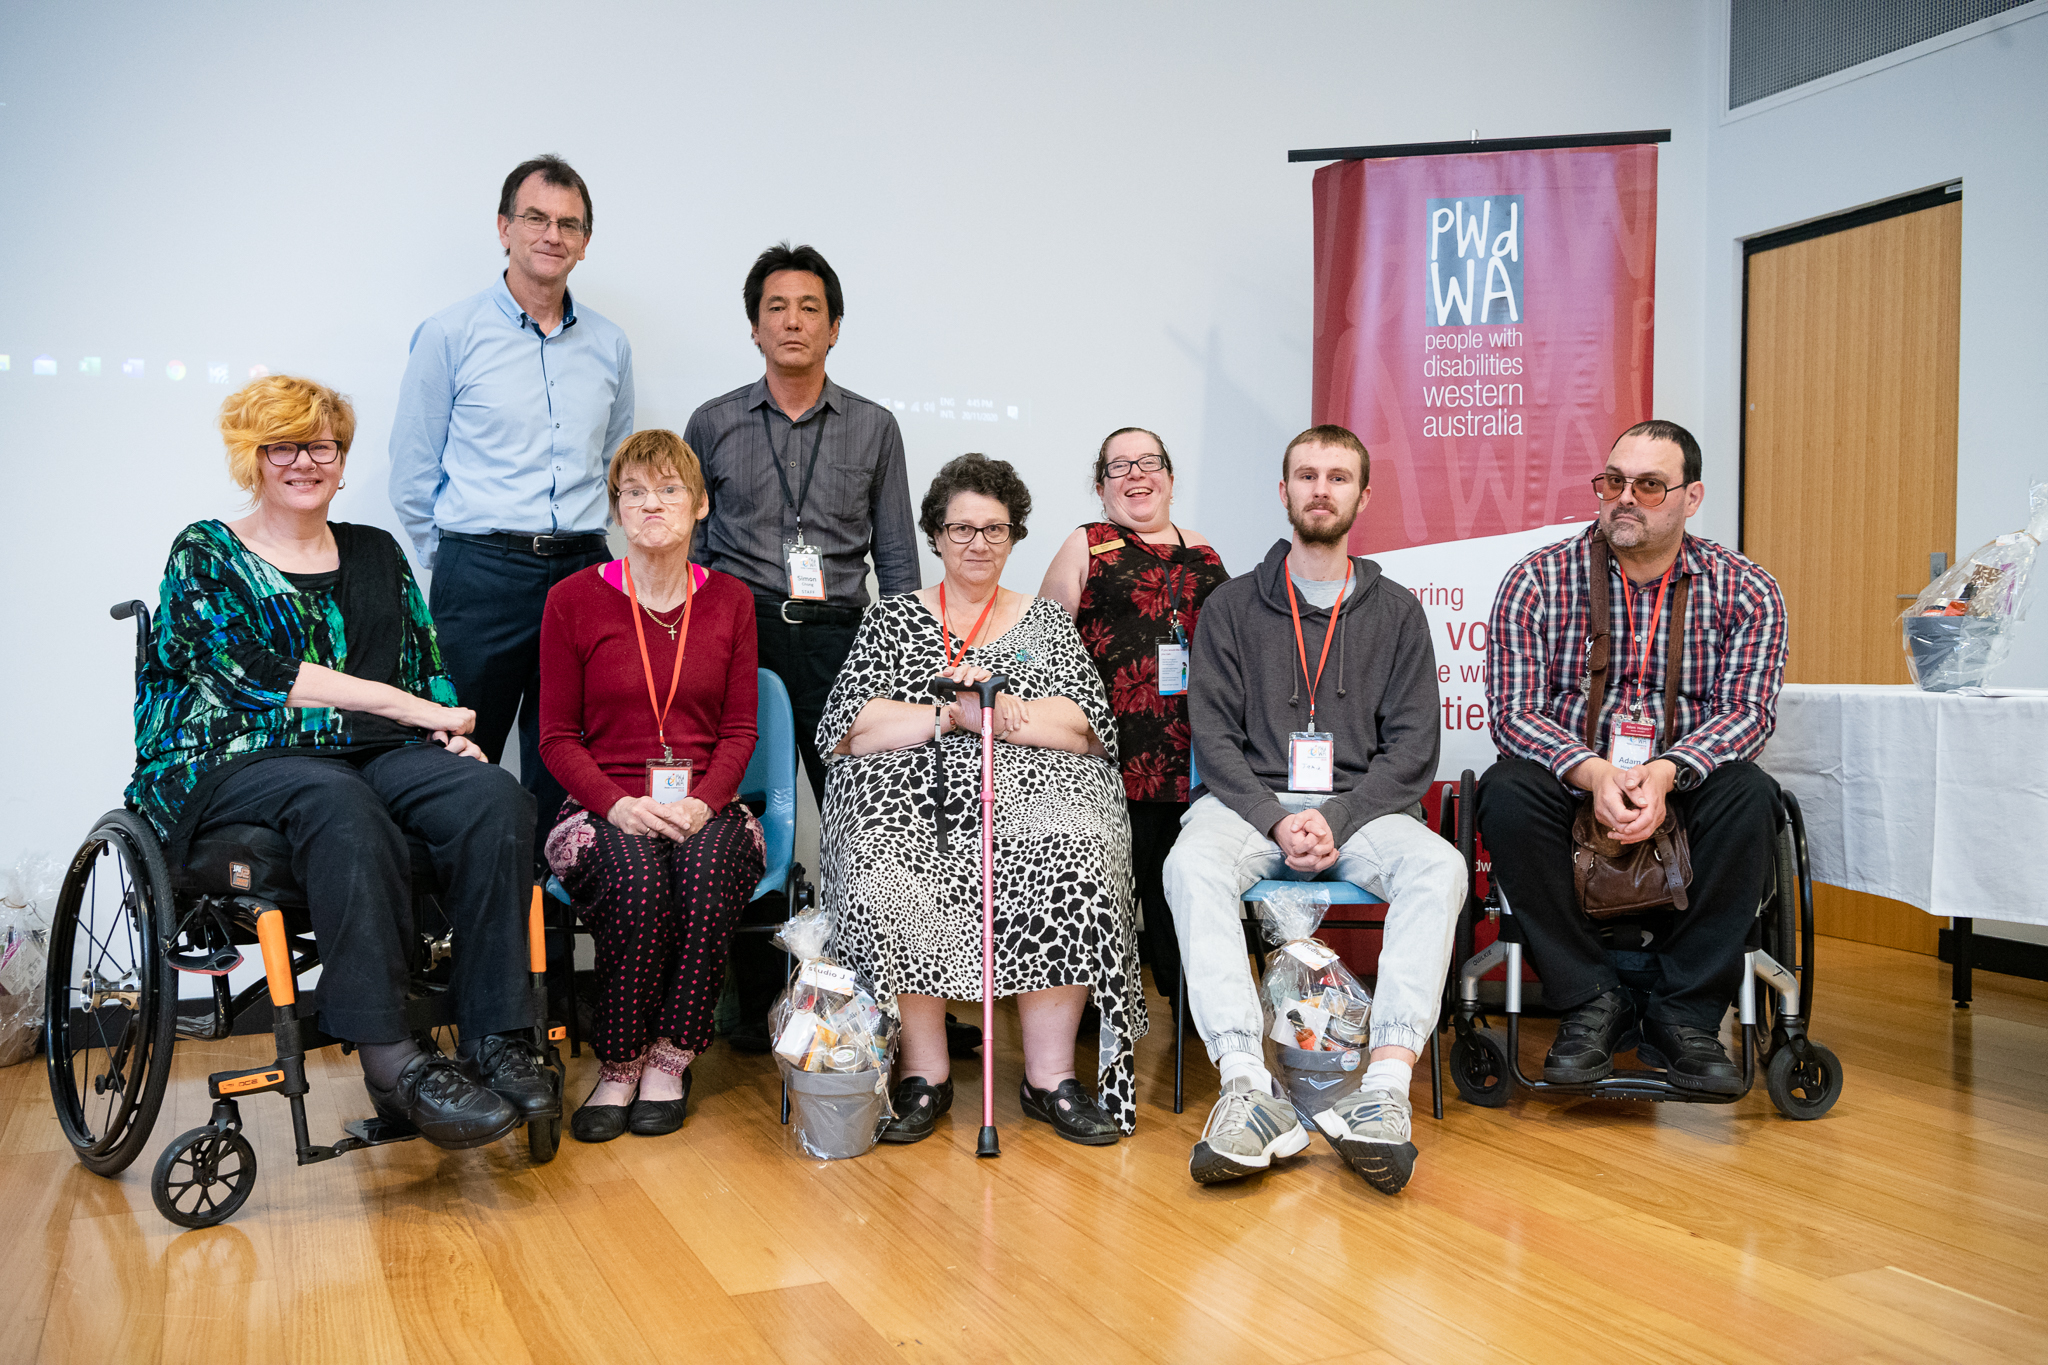 A photo of the Conference Reference Group members